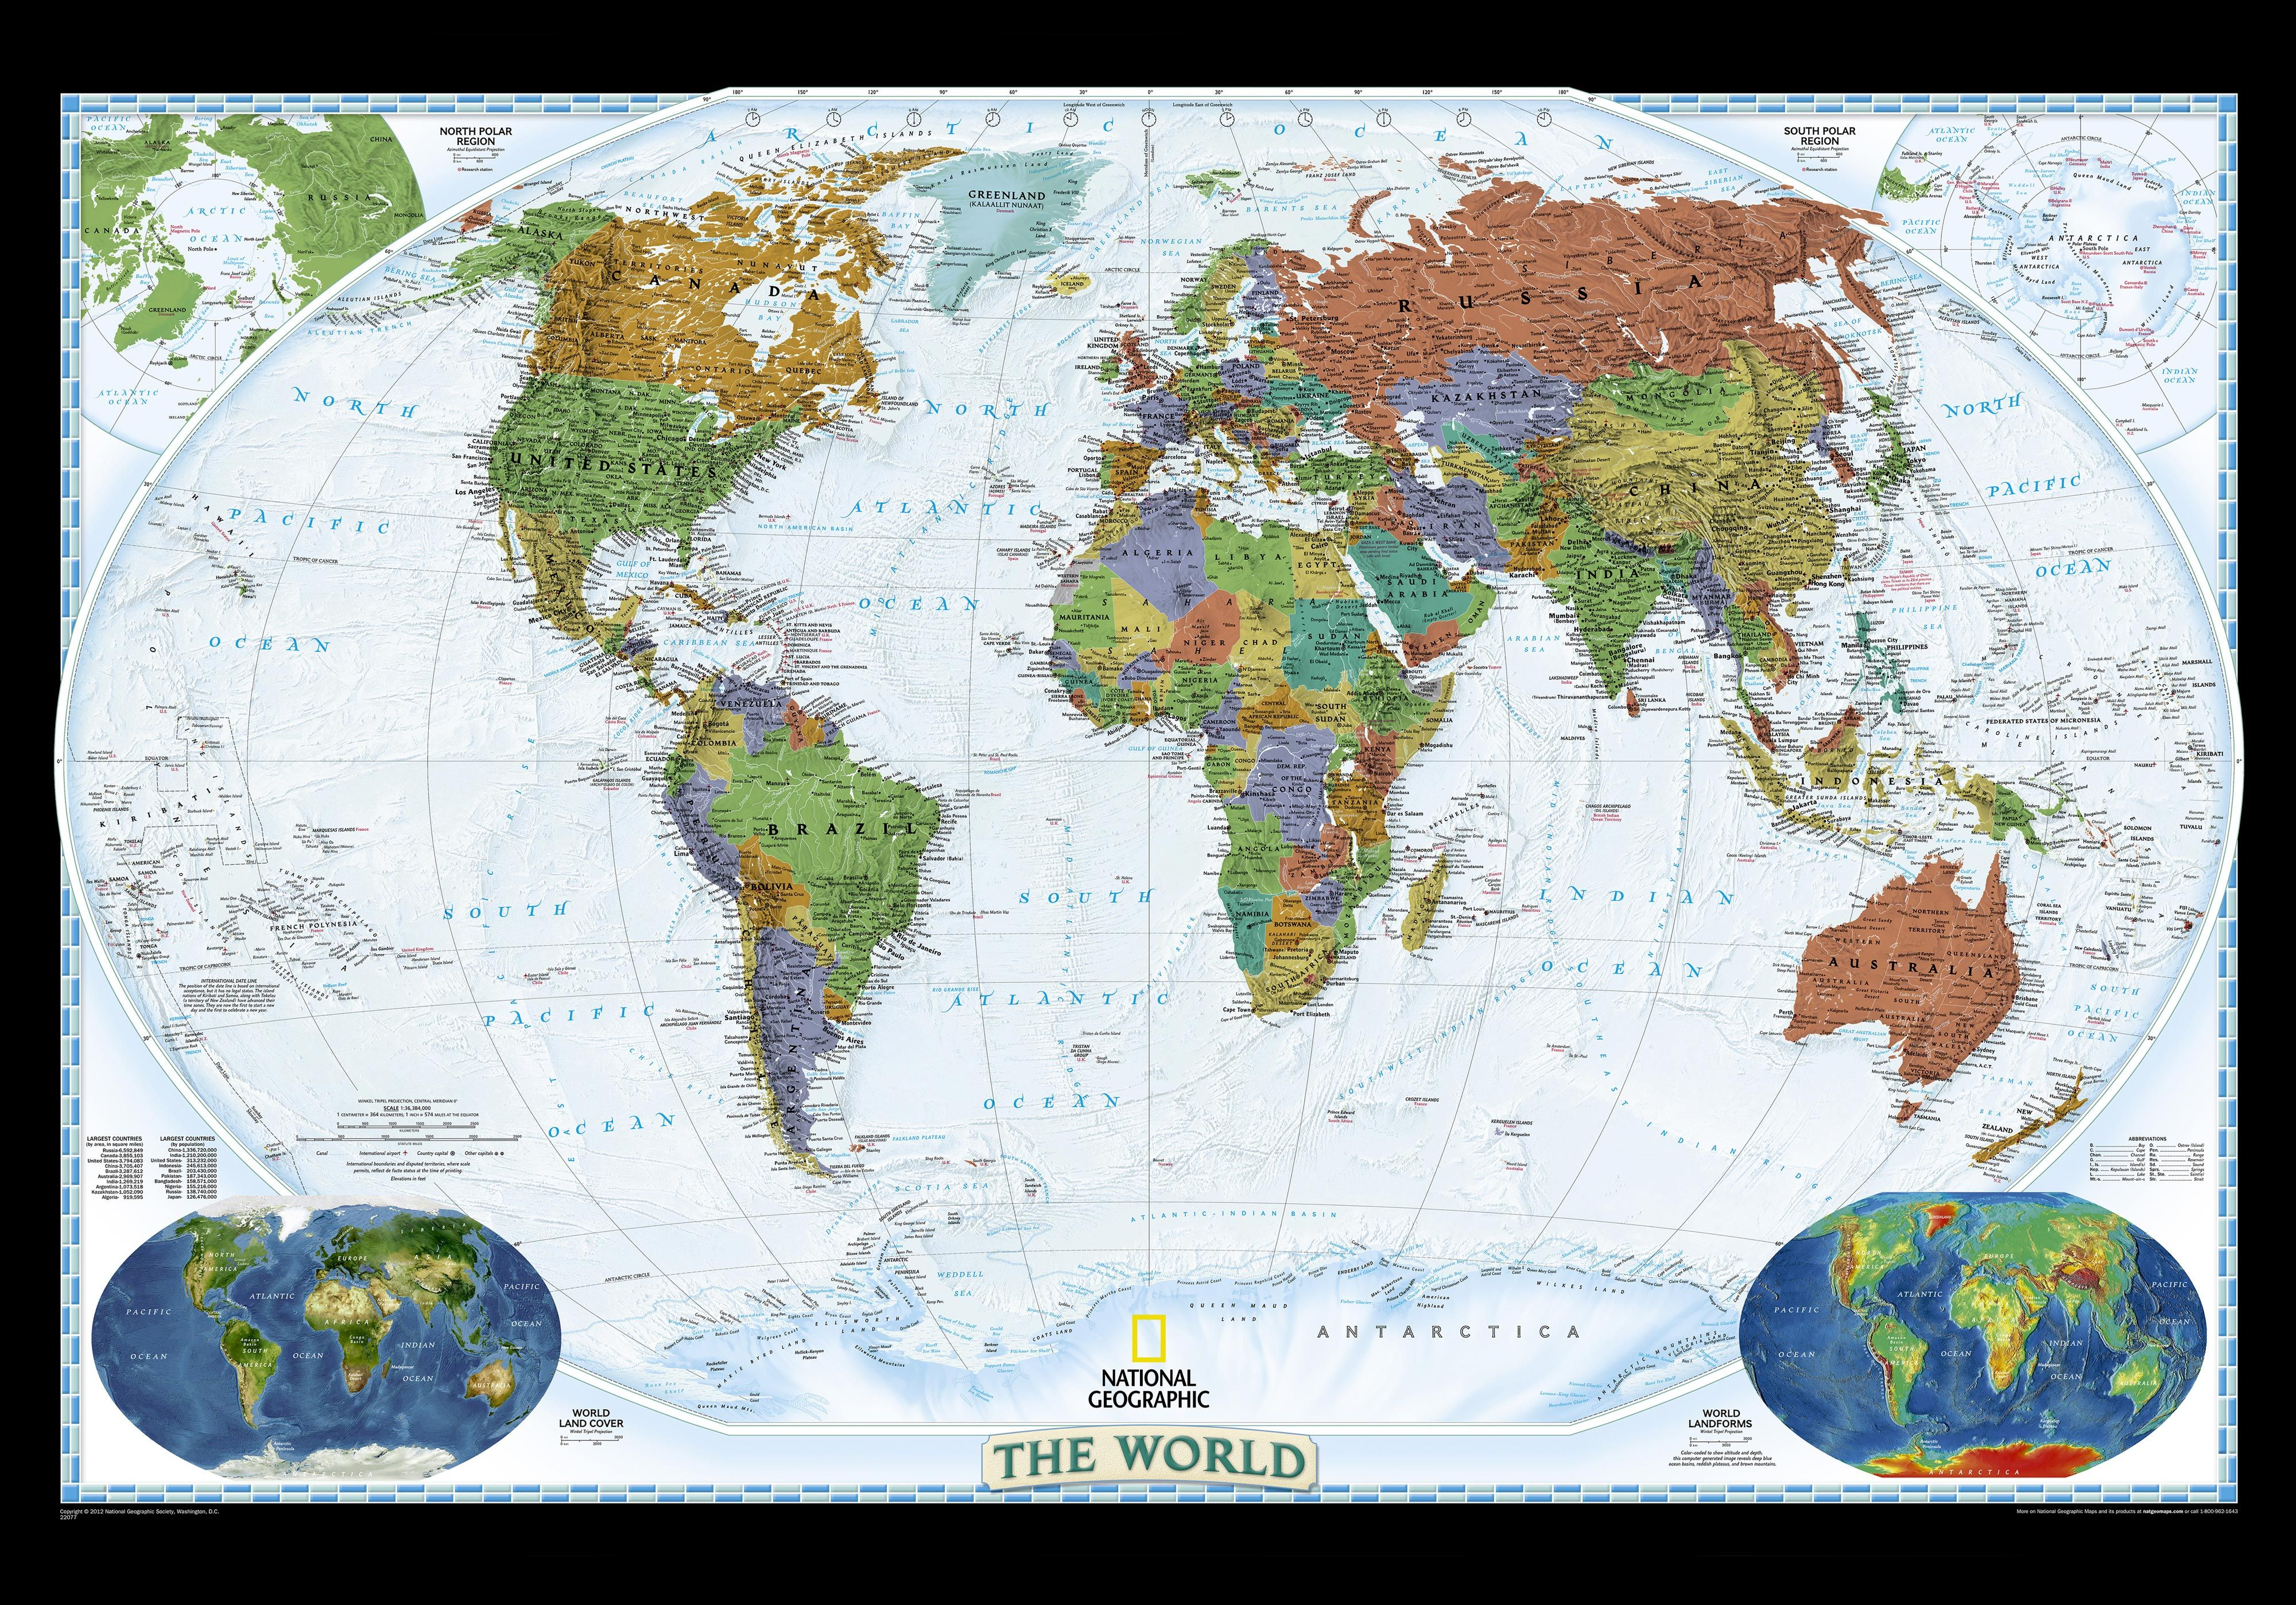 Interative maps of the world over time | Maps of the world | Pinterest